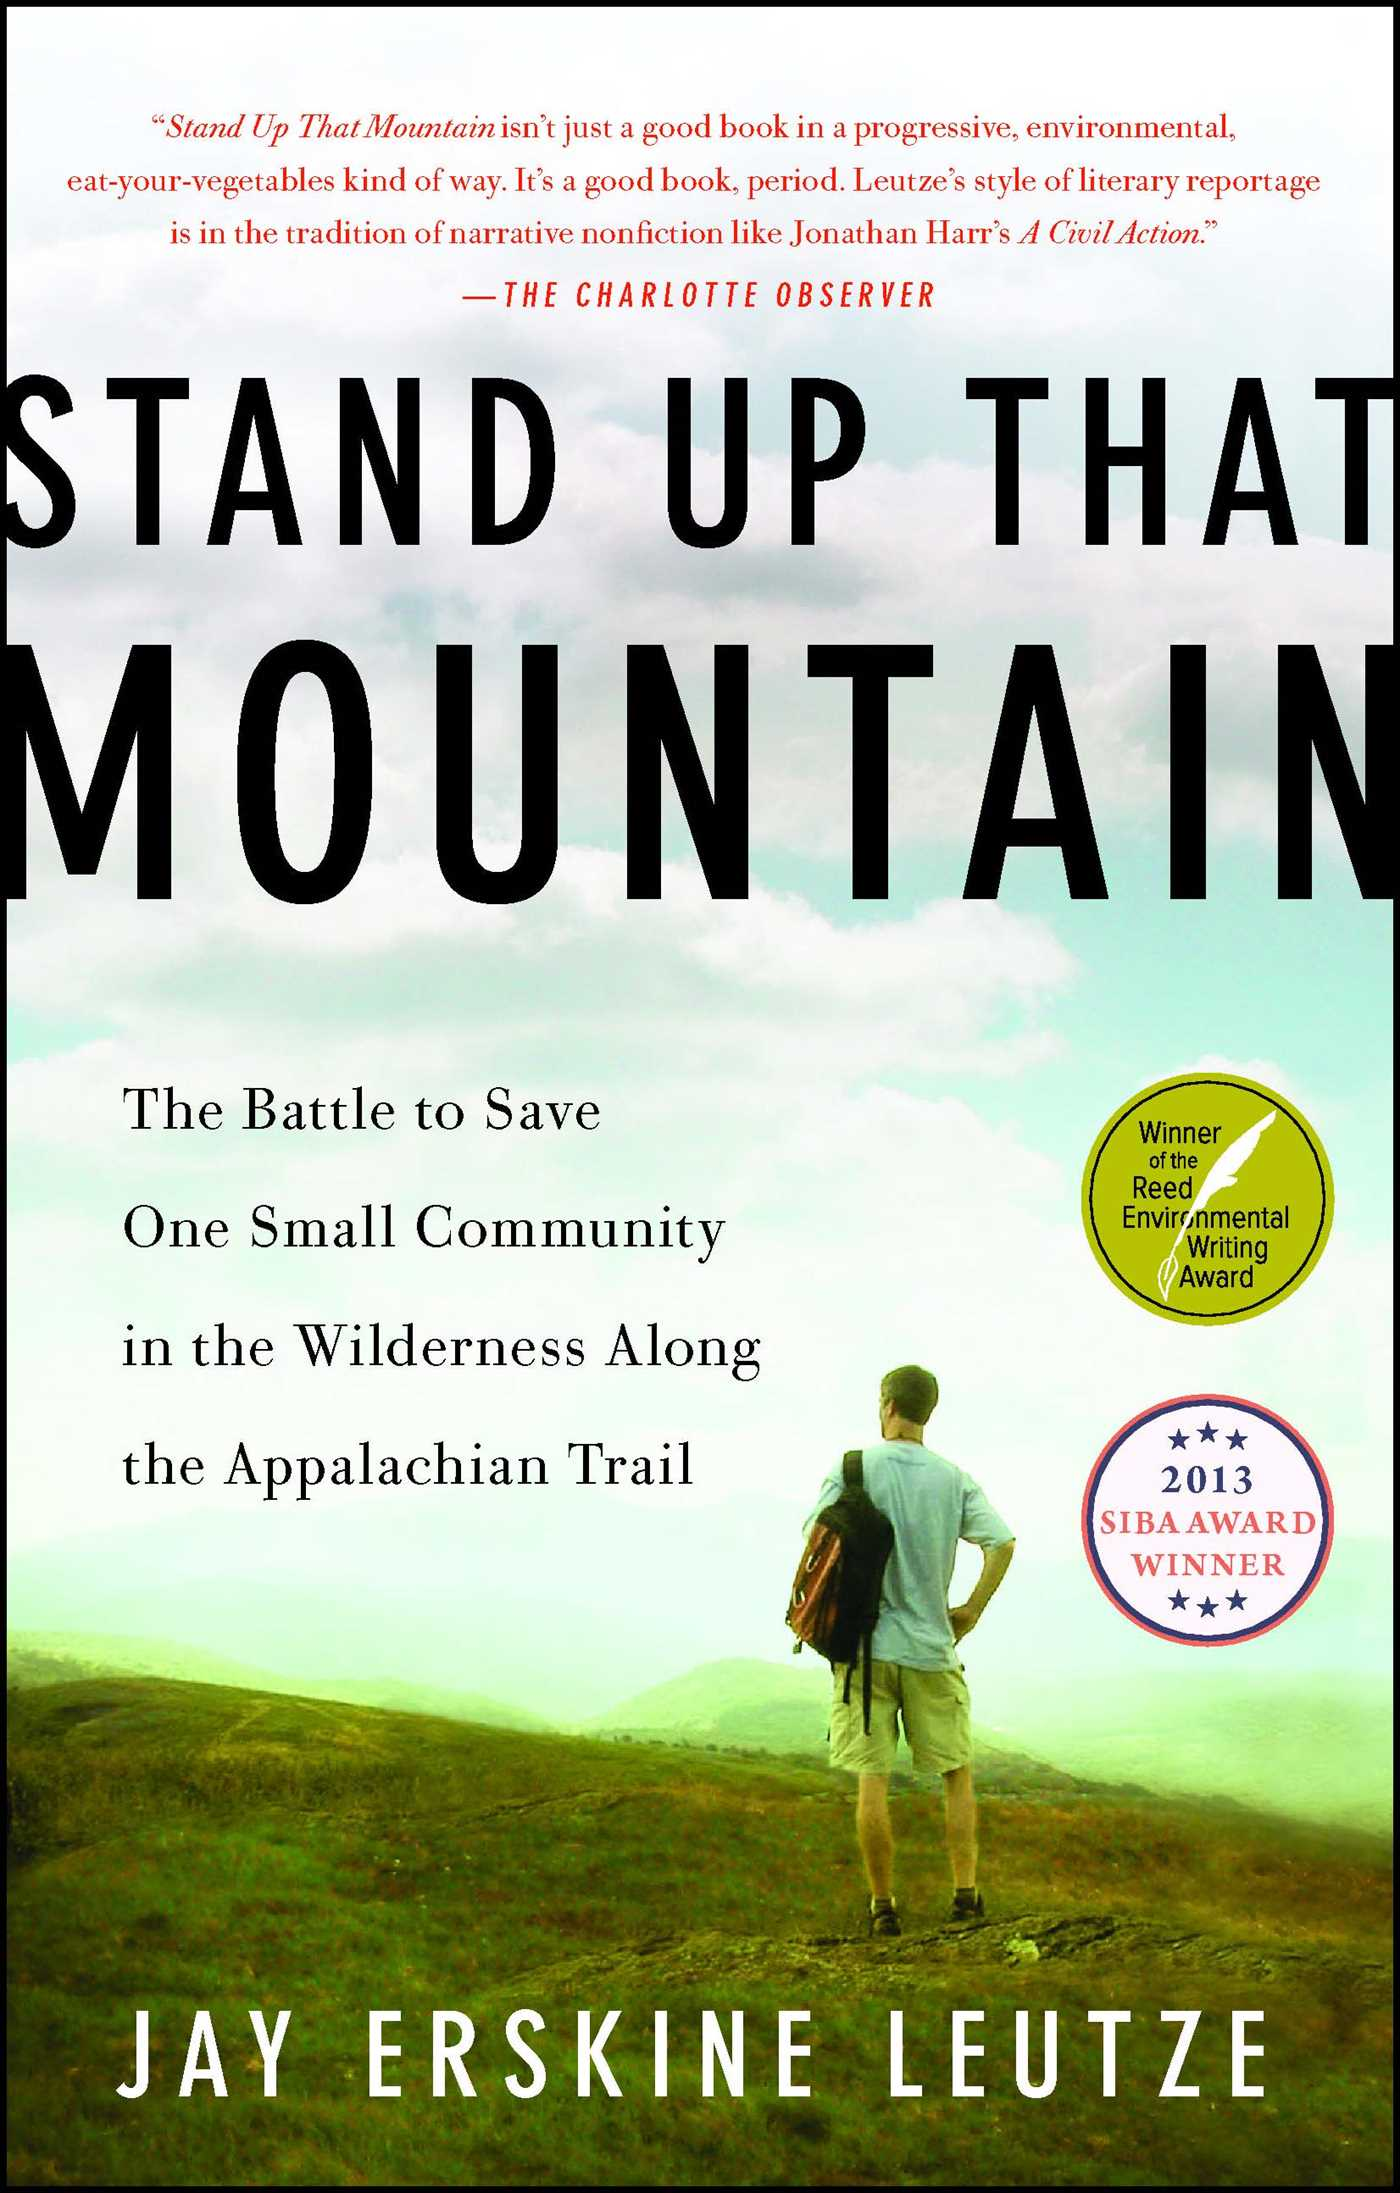 Stand-up-that-mountain-9781451682649_hr